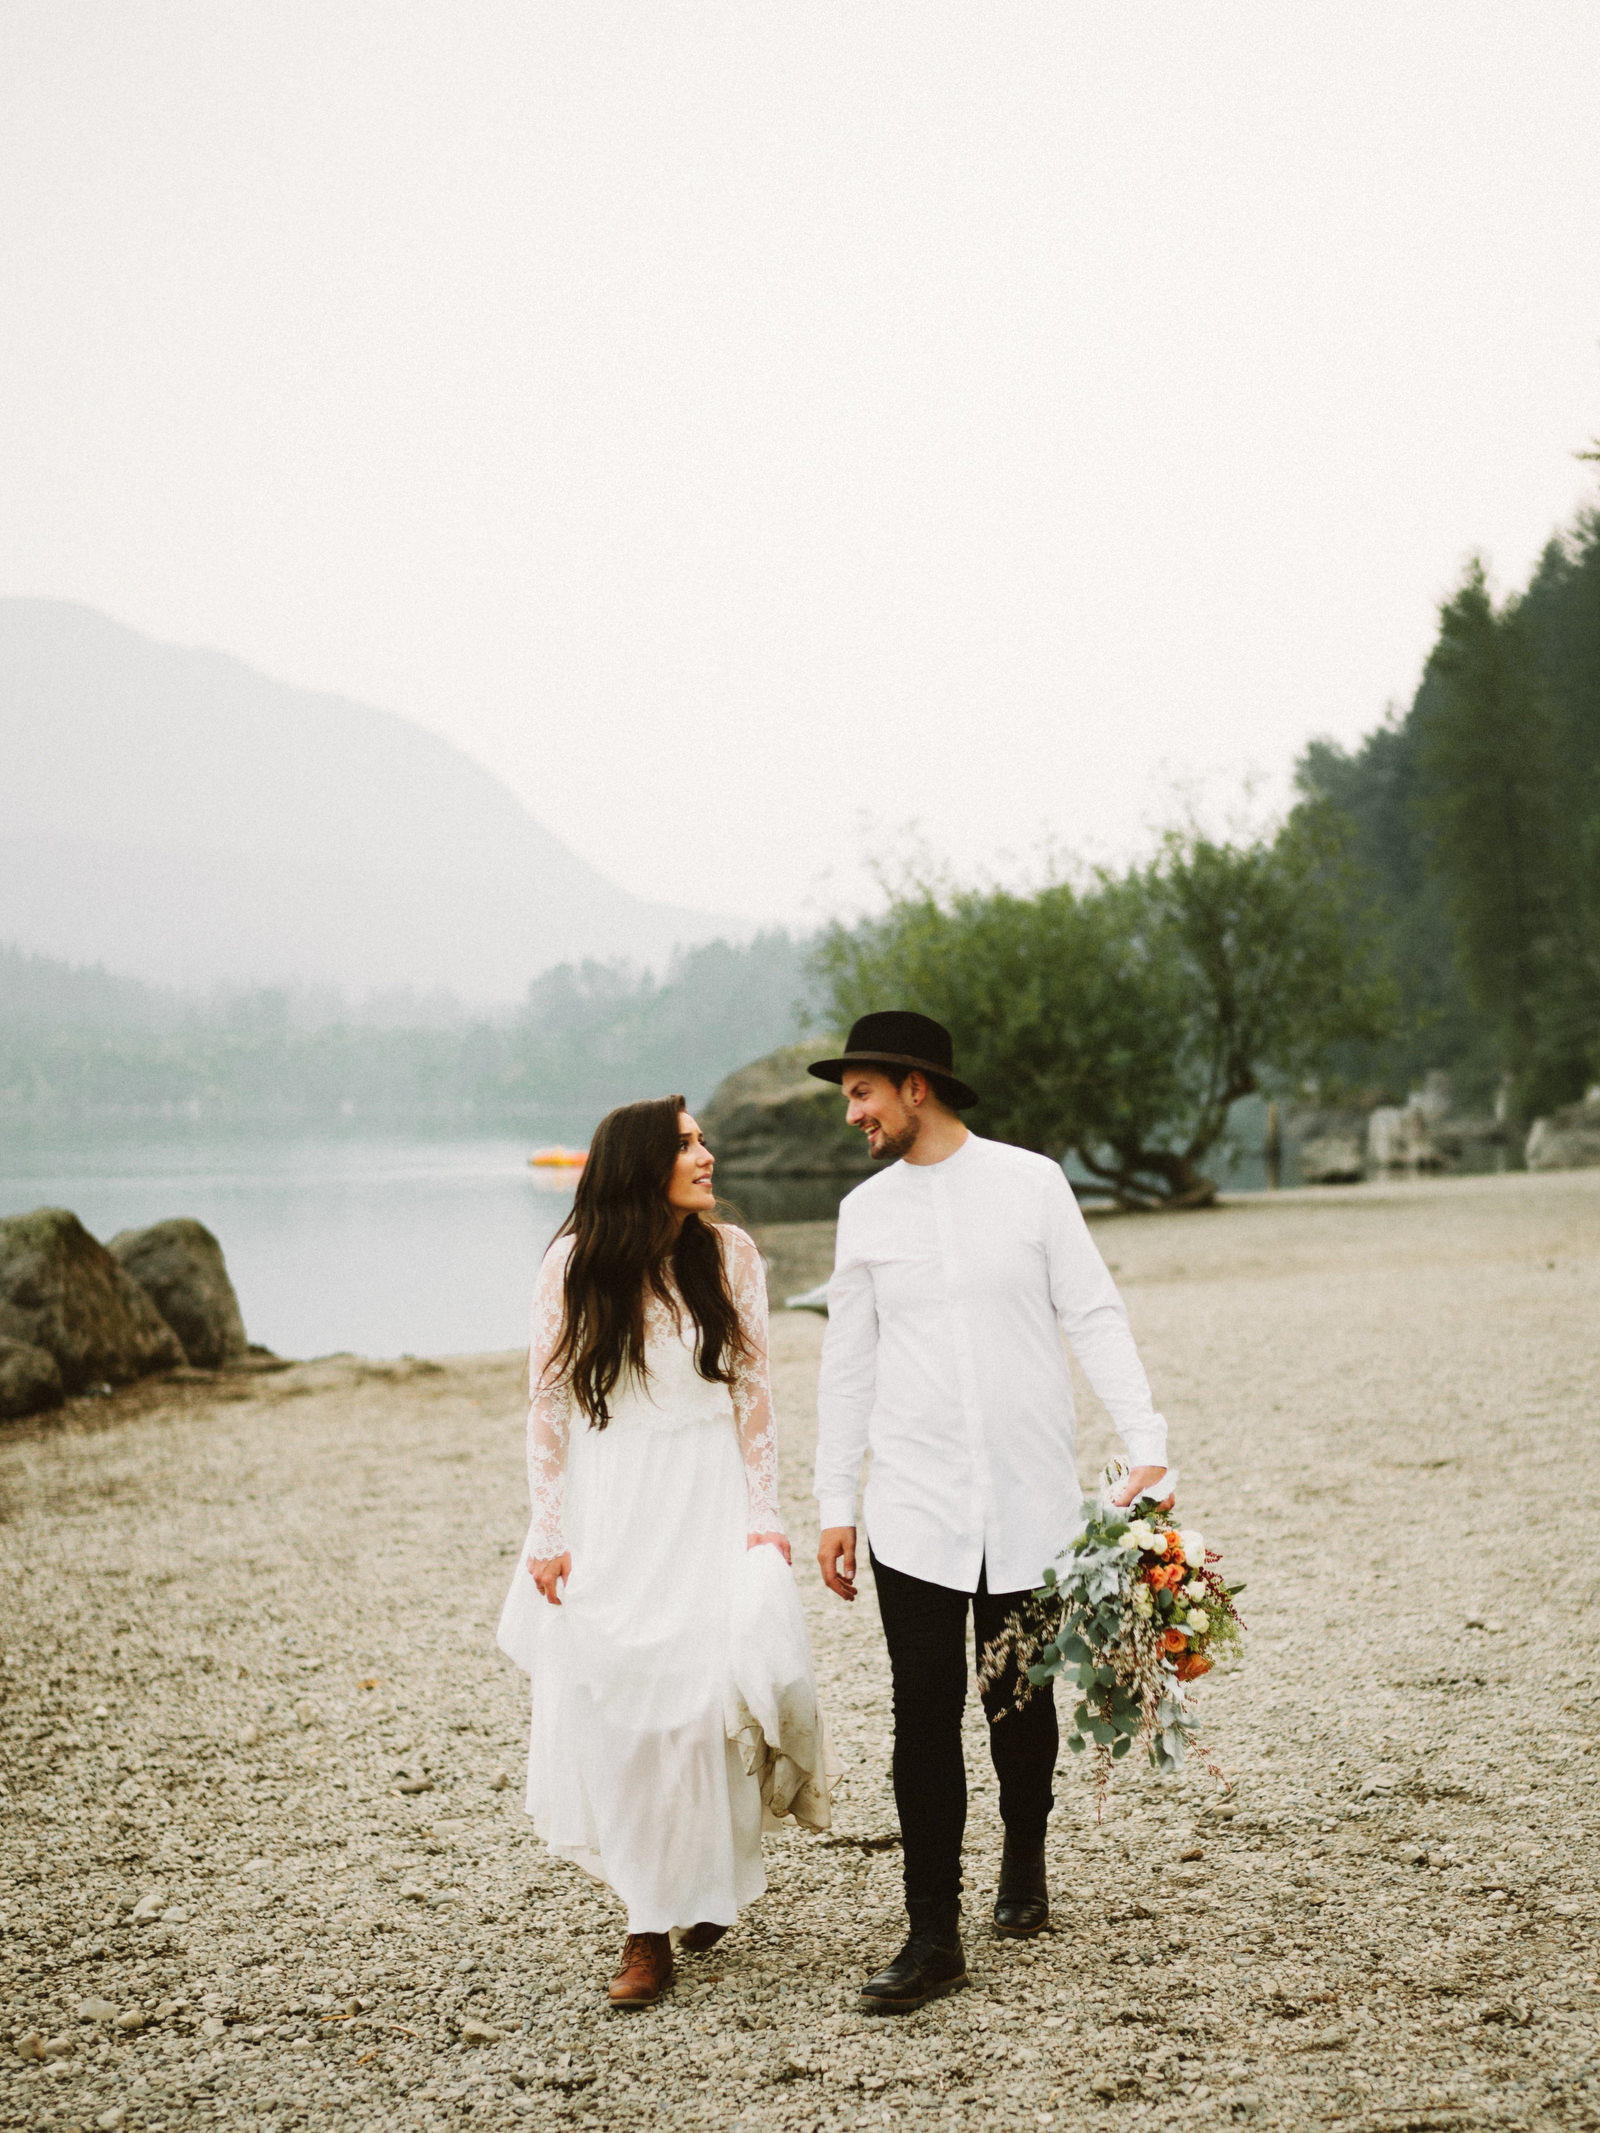 athena-and-camron-seattle-elopement-wedding-benj-haisch-rattlesnake-lake-christian-couple-goals83